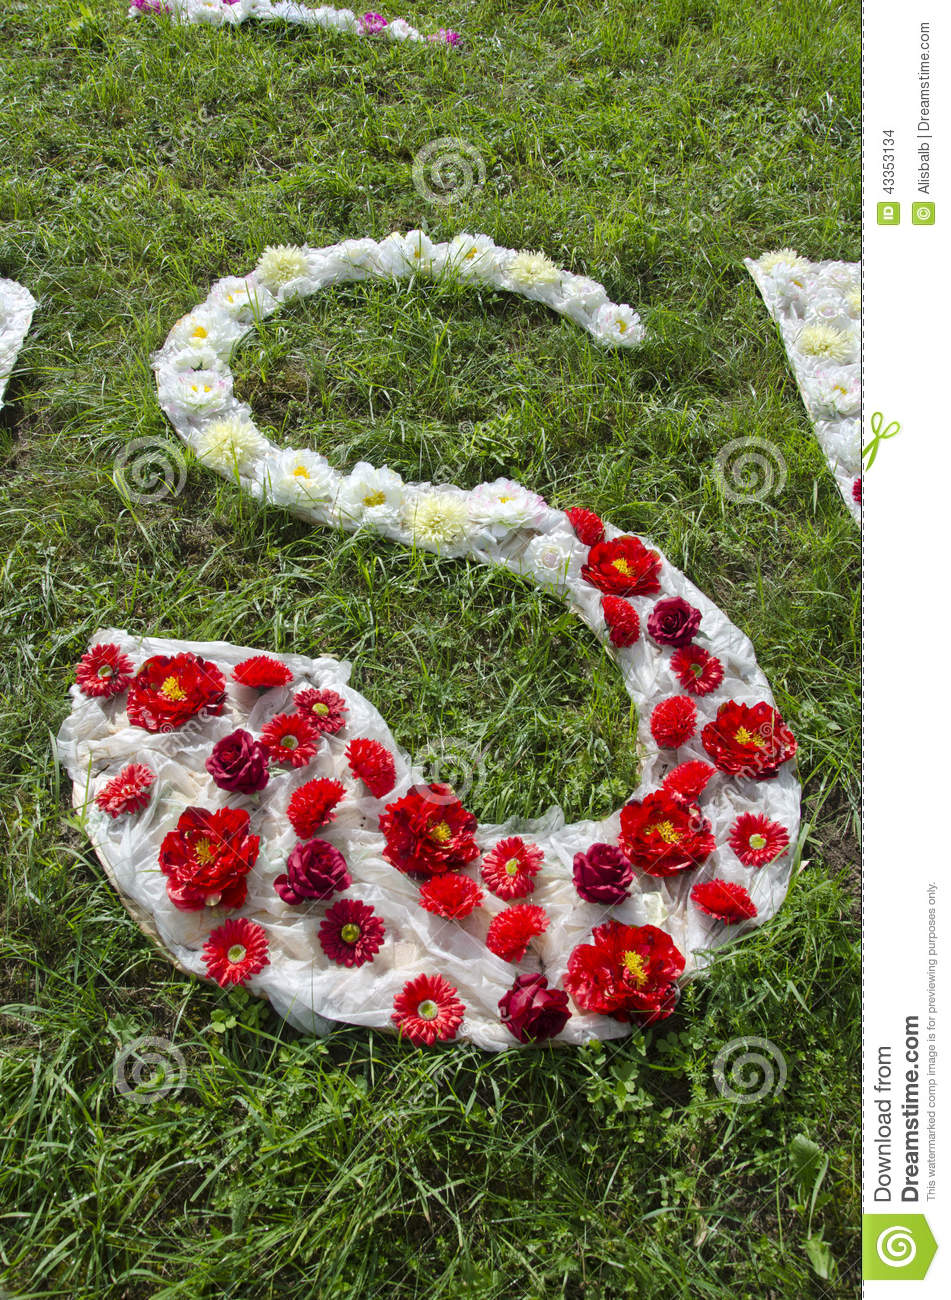 Cloth And Flower Alphabet Letter S On Grass In Park Stock Photo